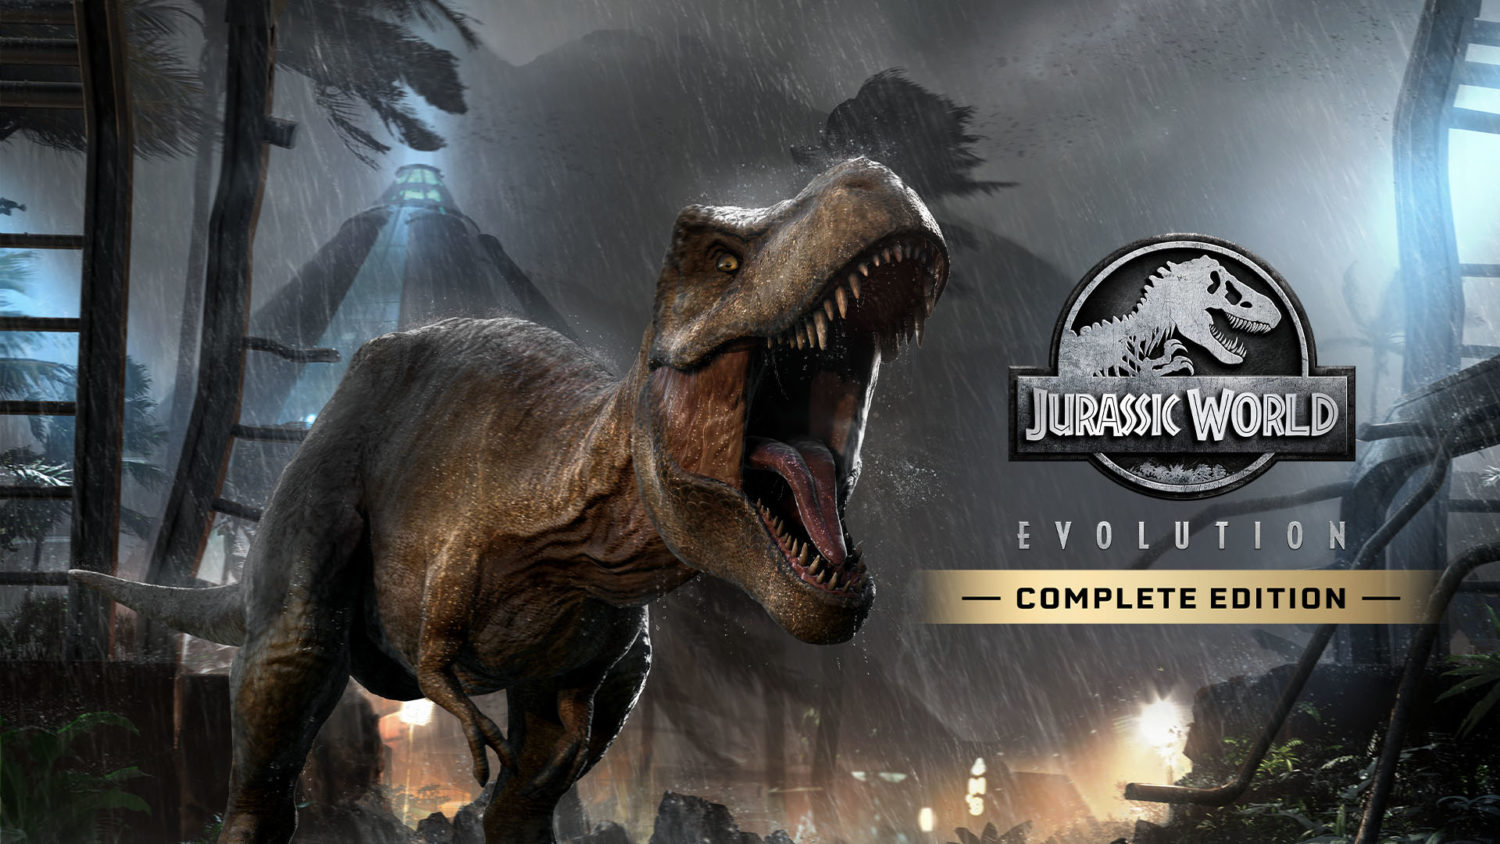 Jurassic World Evolution: Complete Edition (Nintendo Switch eShop)